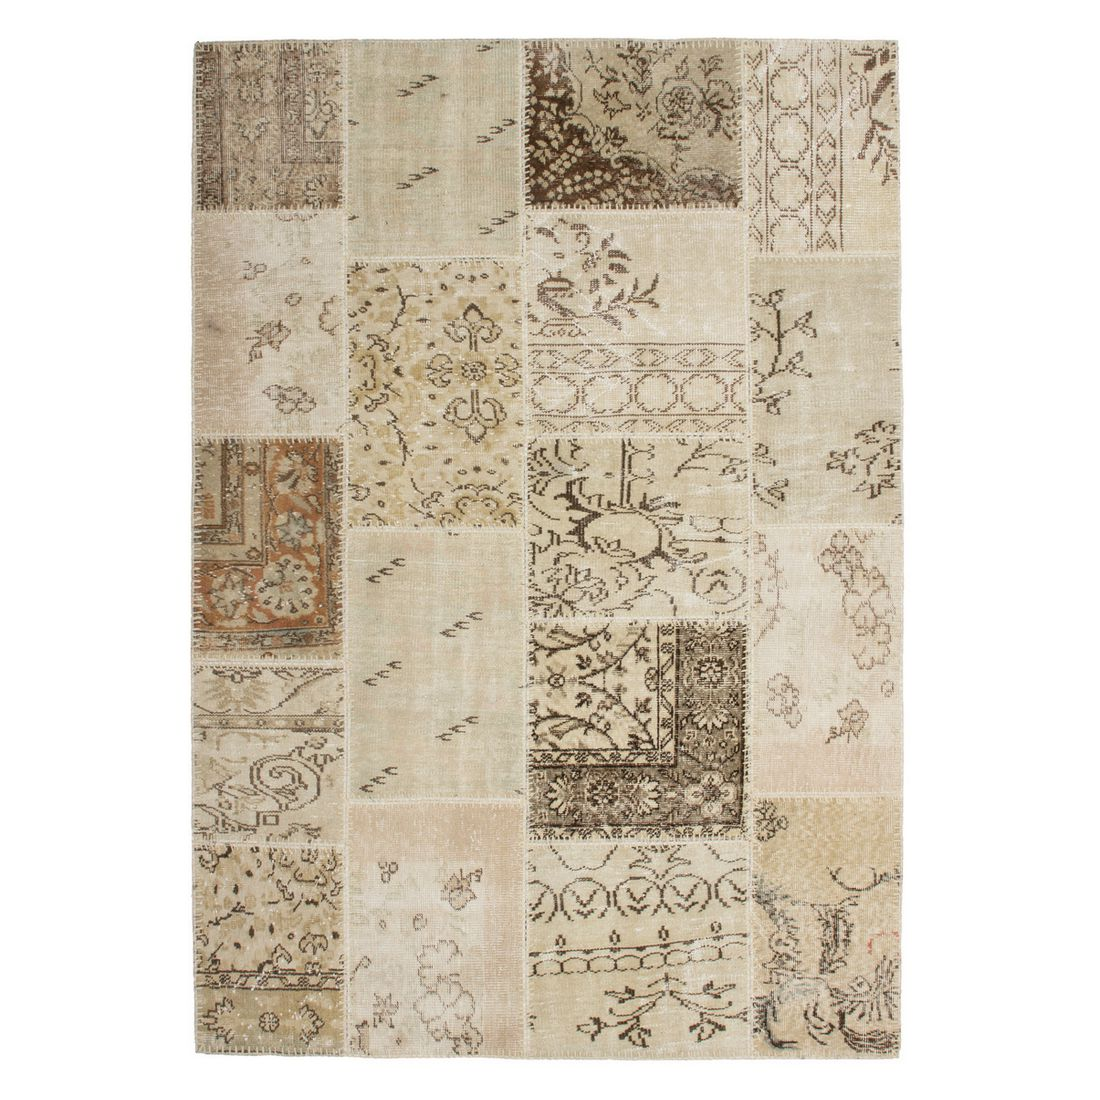 Teppich Atlas - Beige - 200 x 290 cm, Obsession